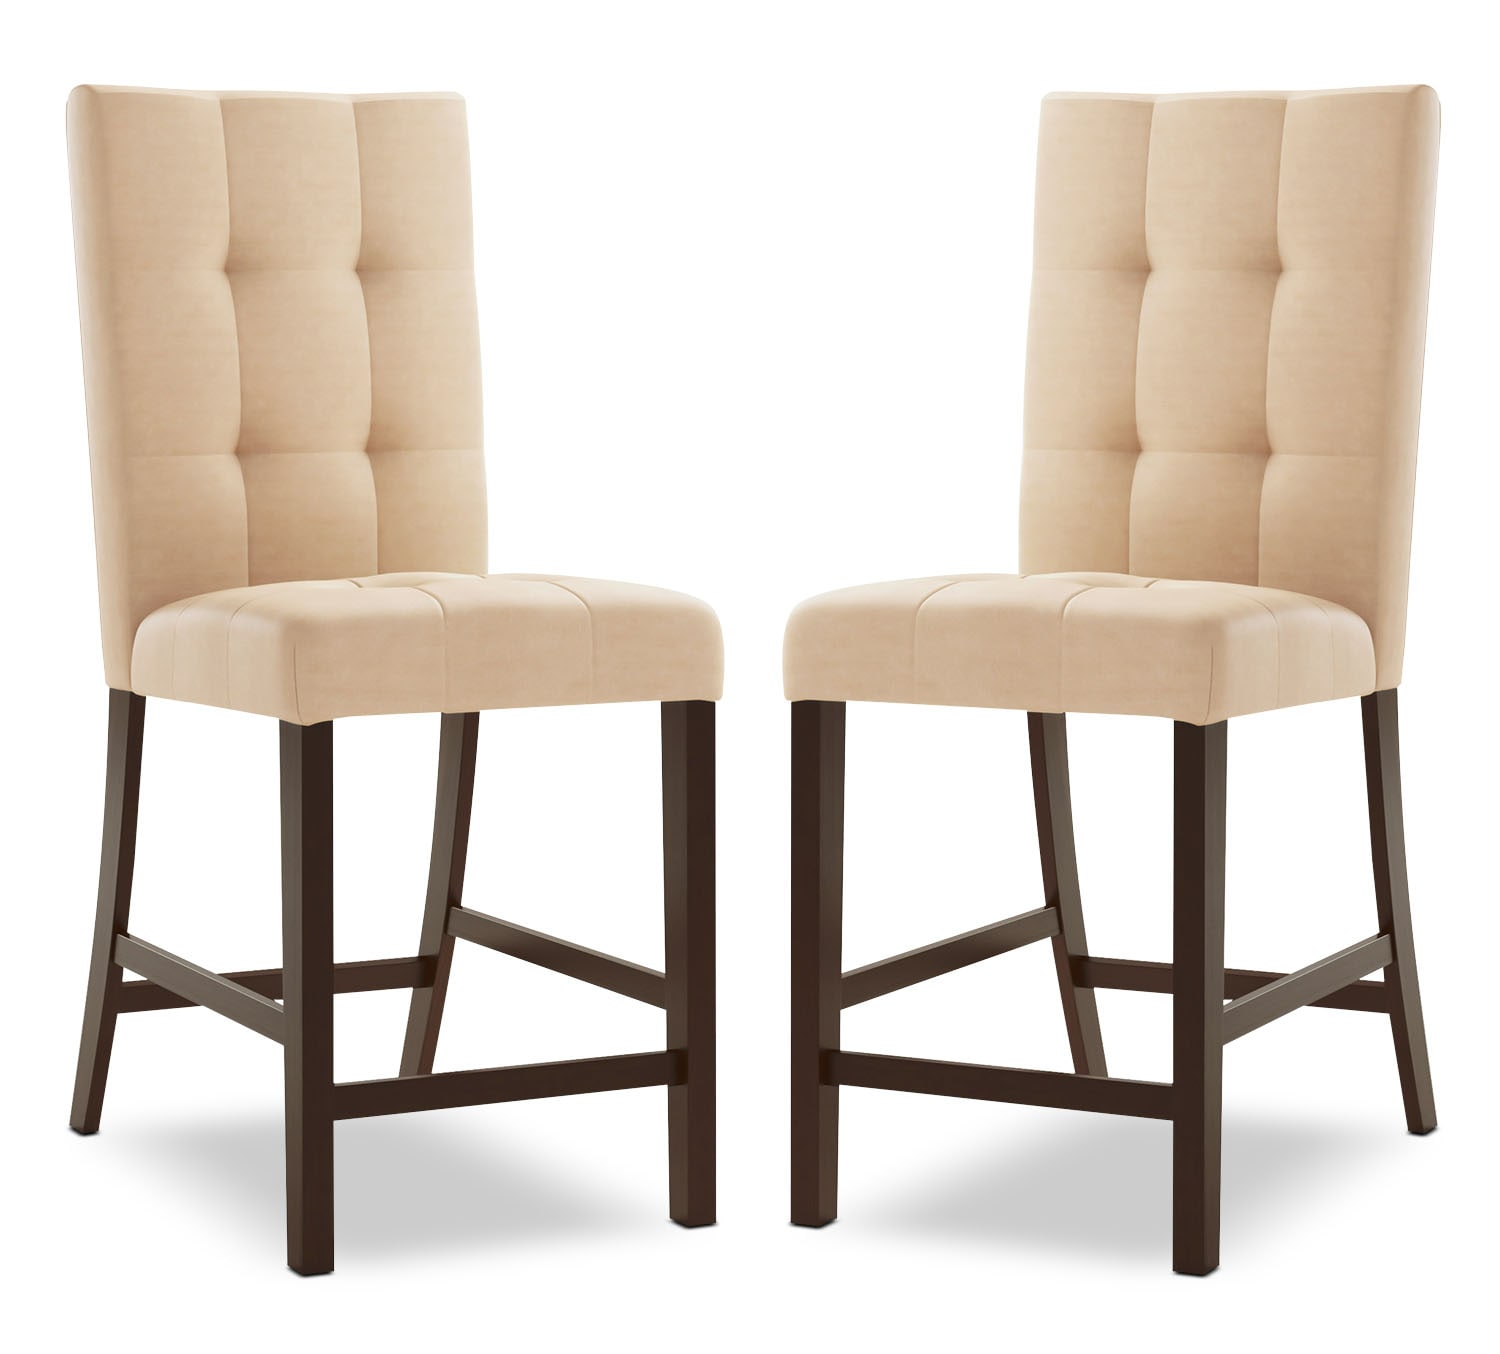 Bistro Square Tufted Counter Height Dining Chair Set Of 2